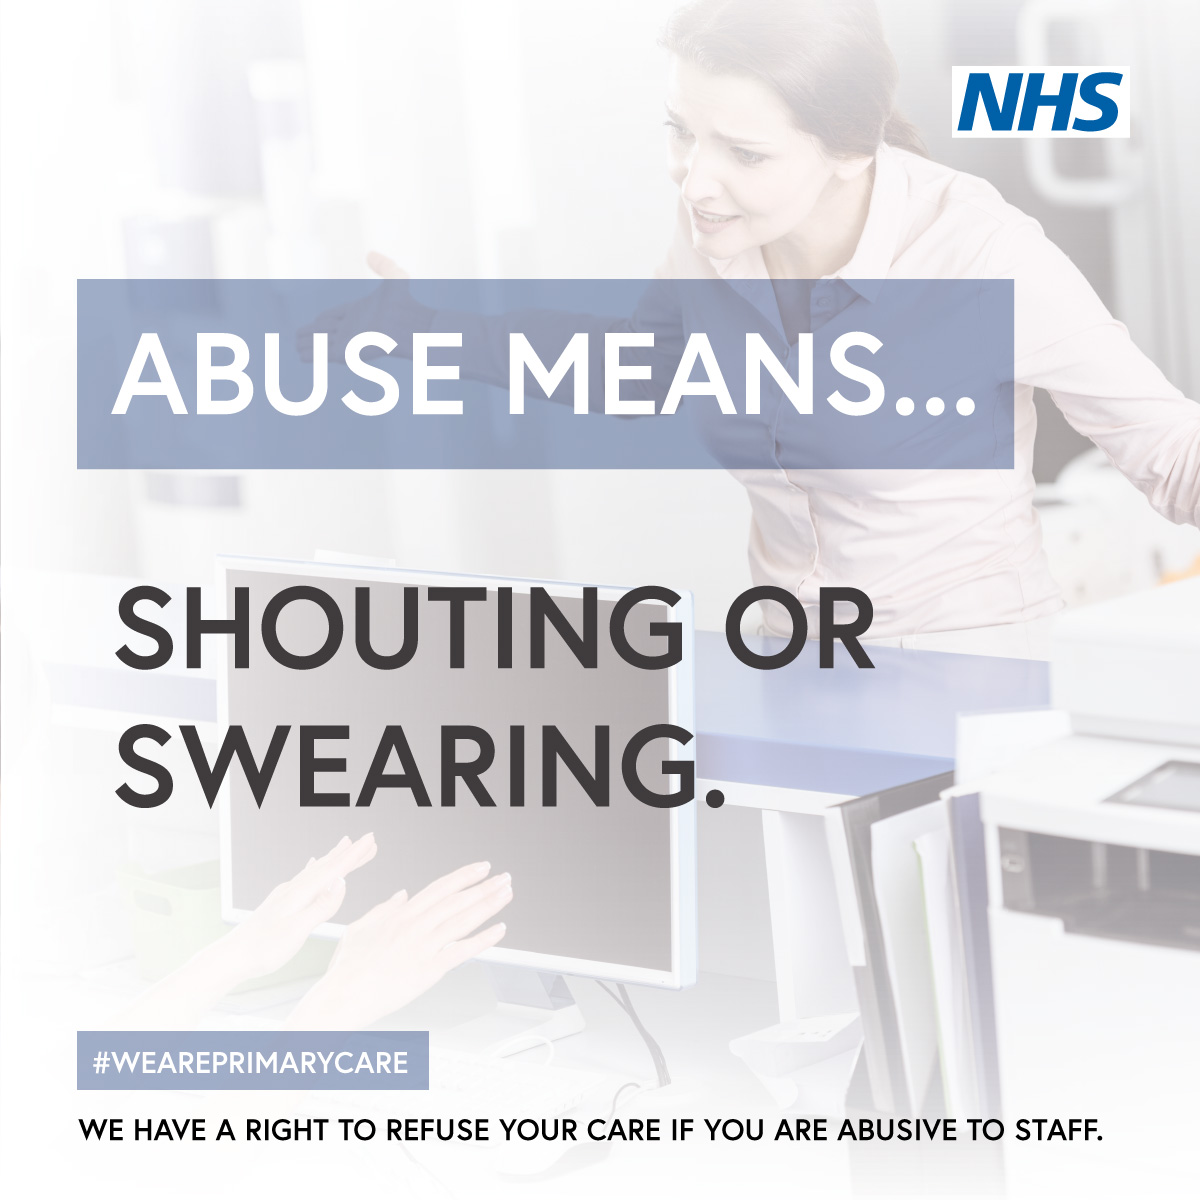 Abuse Means - Shouting or Swearing JPG